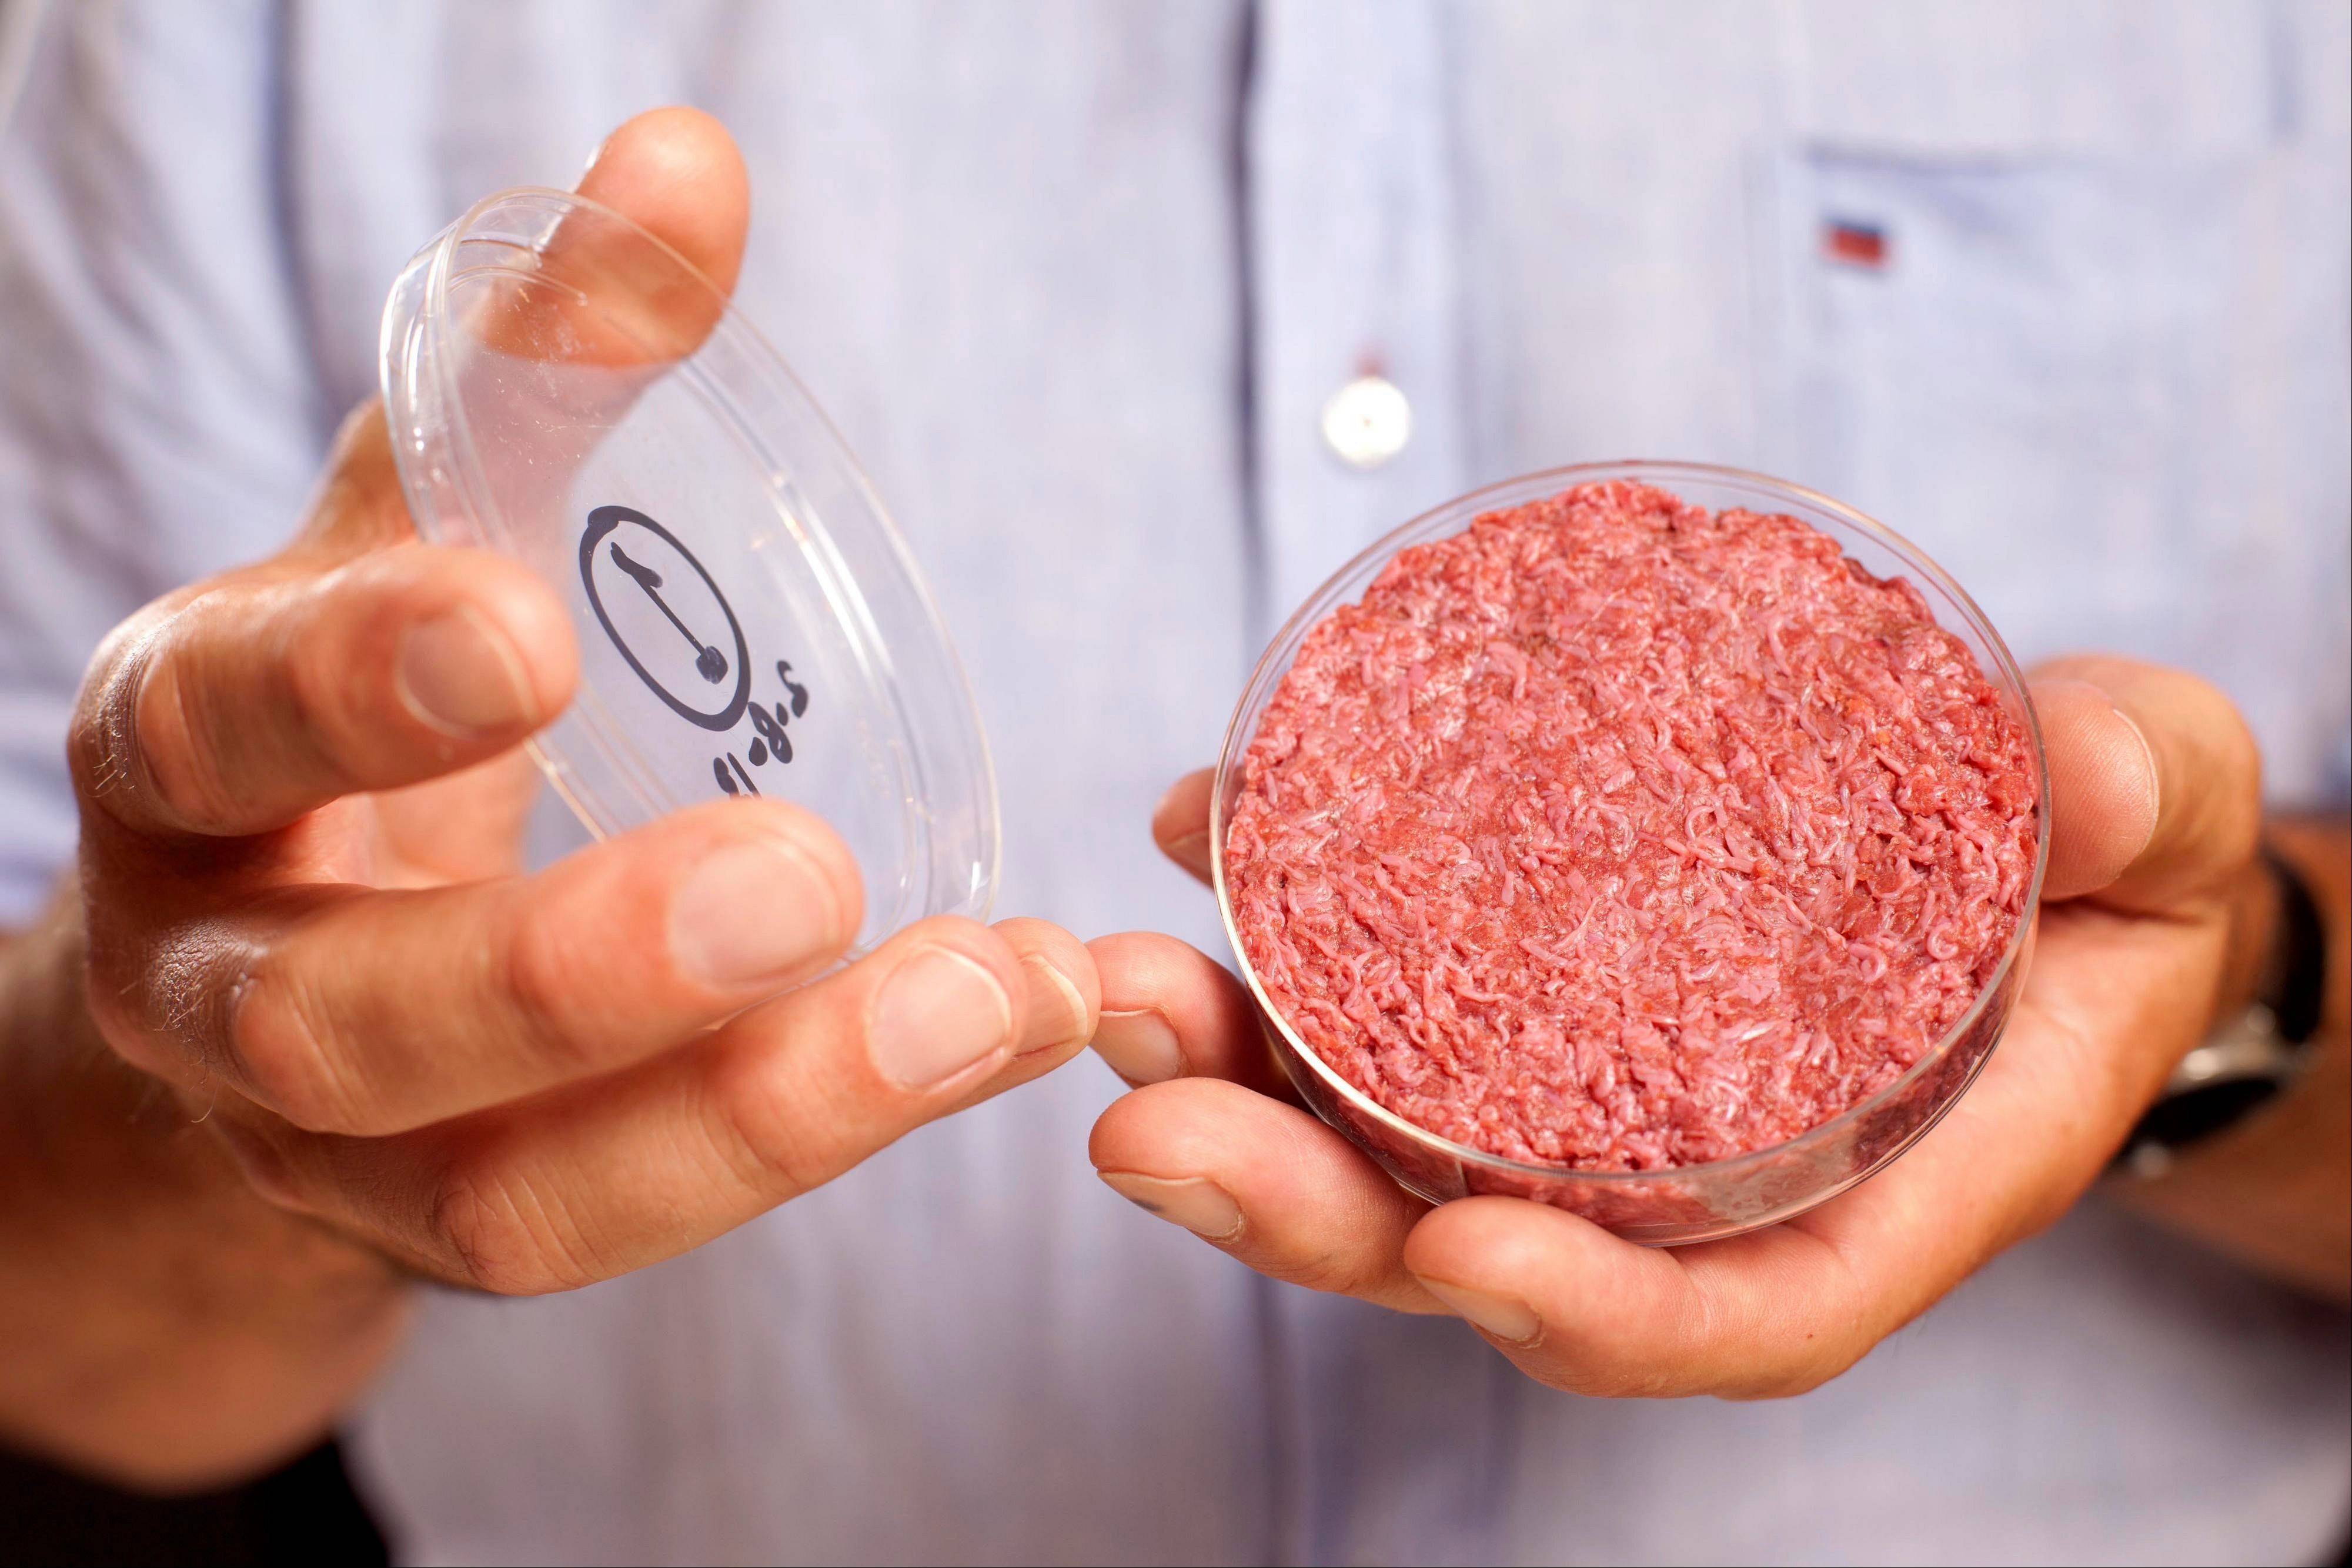 A new Cultured Beef Burger made from cultured beef grown in a laboratory from stem cells of cattle is held by the man who developed the burger, Professor Mark Post of Netherland�s Maastricht University, during a the world�s first public tasting event for the food product in London, Monday. The Cultured Beef could help solve the coming food crisis and combat climate change, according to the producers of the burger, which cost some 250,000 euros ($332,000) to produce.